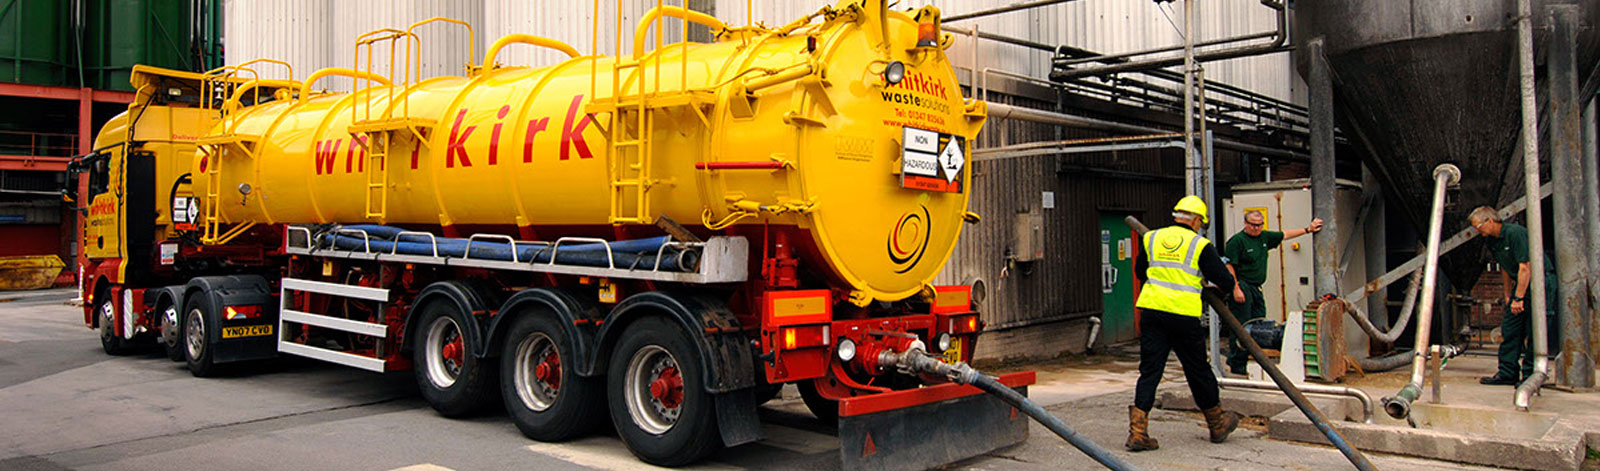 Industiral Waste Disposal Services